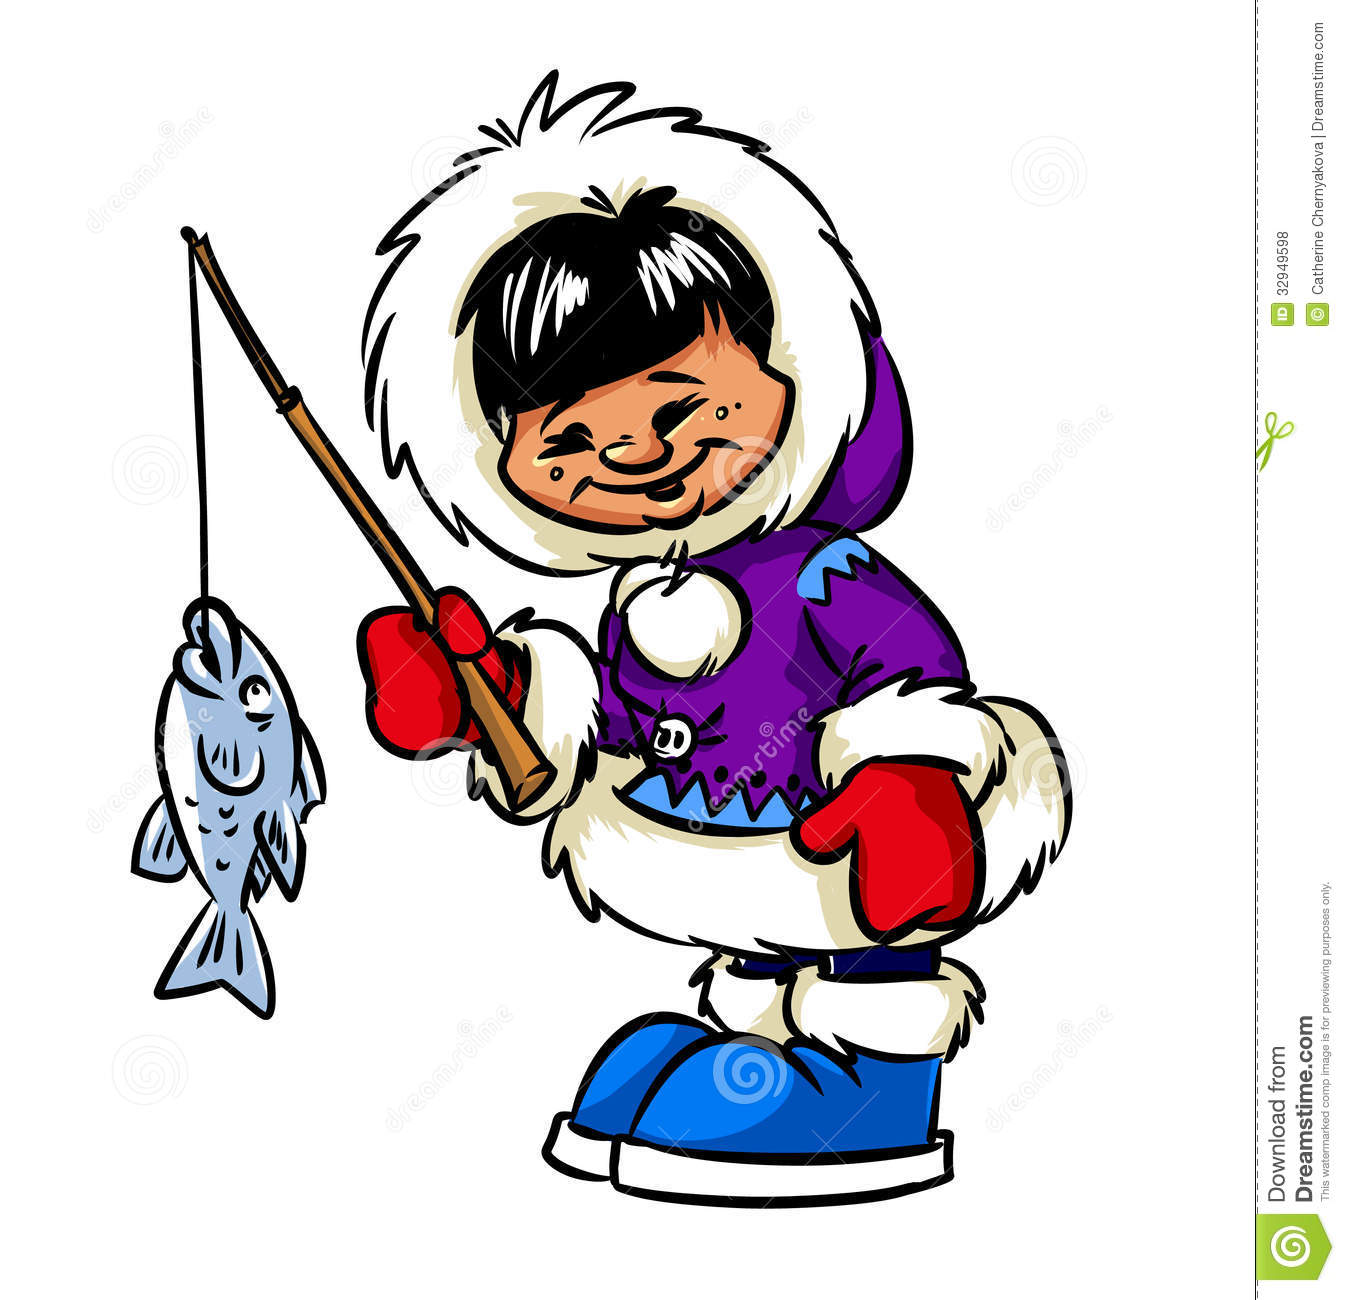 Clip Art Eskimo Clipart eskimo clipart kid happy boy and fish royalty free stock photos image 32949598